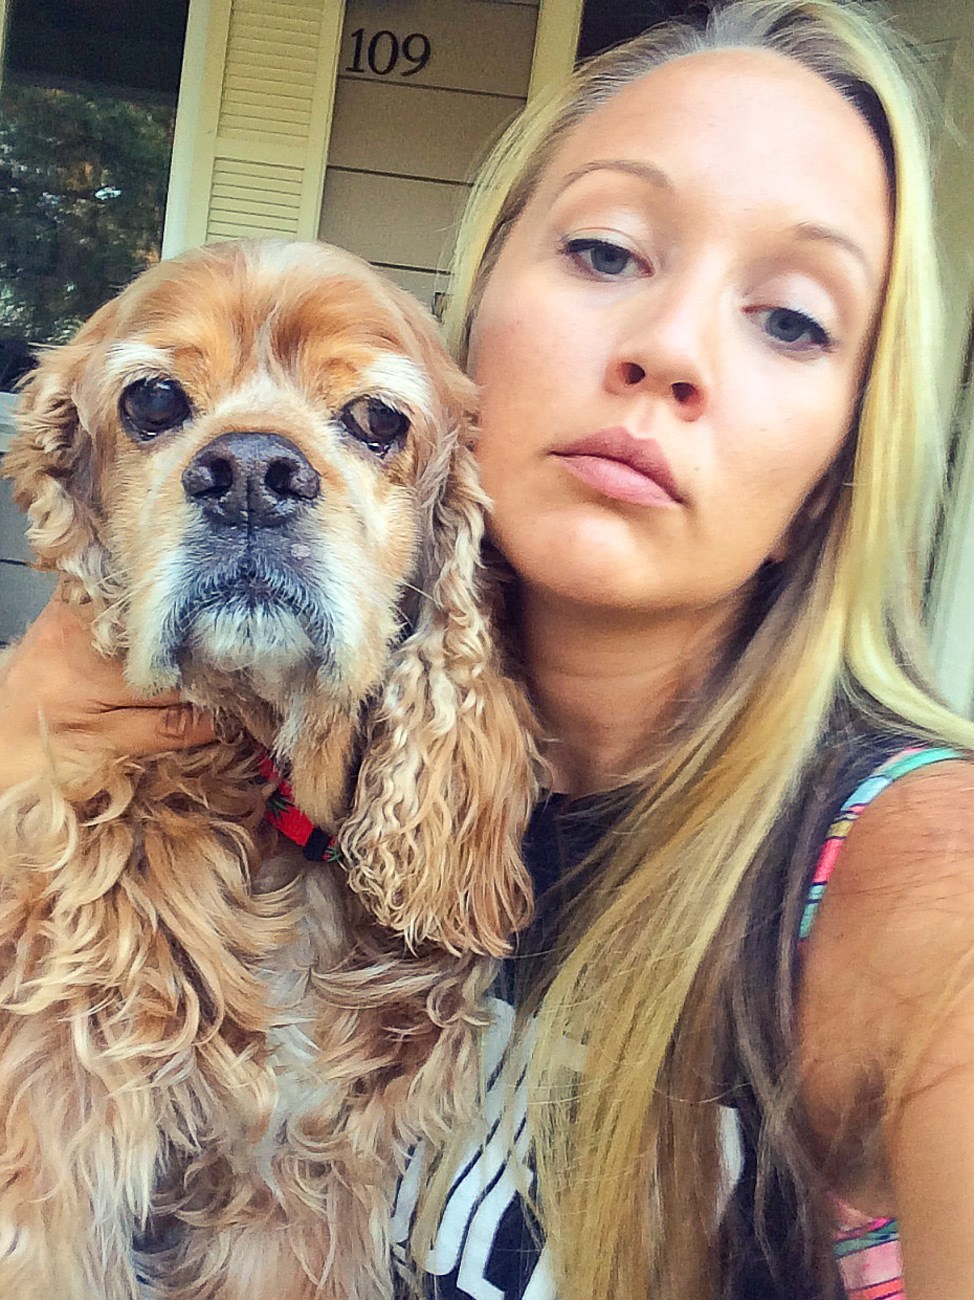 Disapproving Dog Selfie